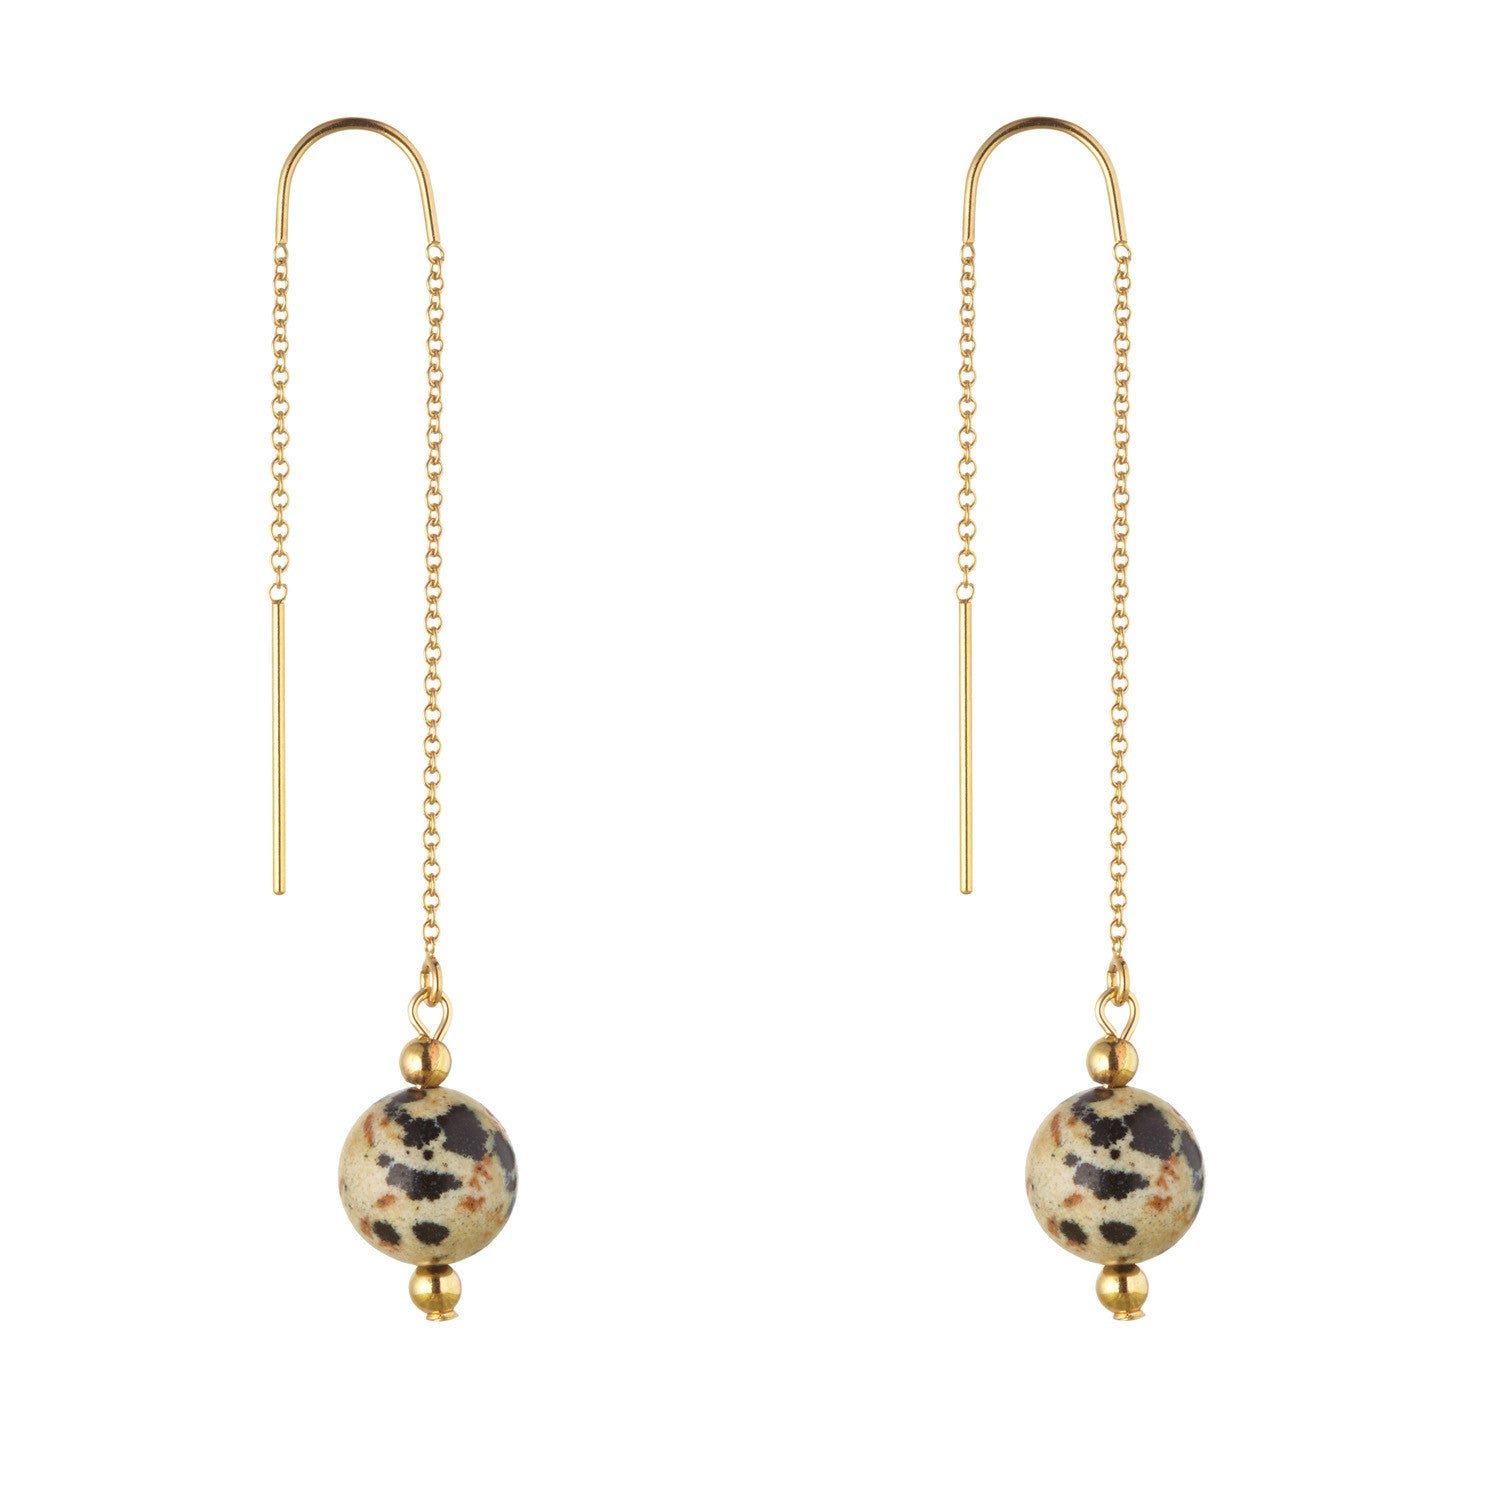 14kt Gold Filled Dalmatian Jasper Threader Earrings - MoMuse Jewellery